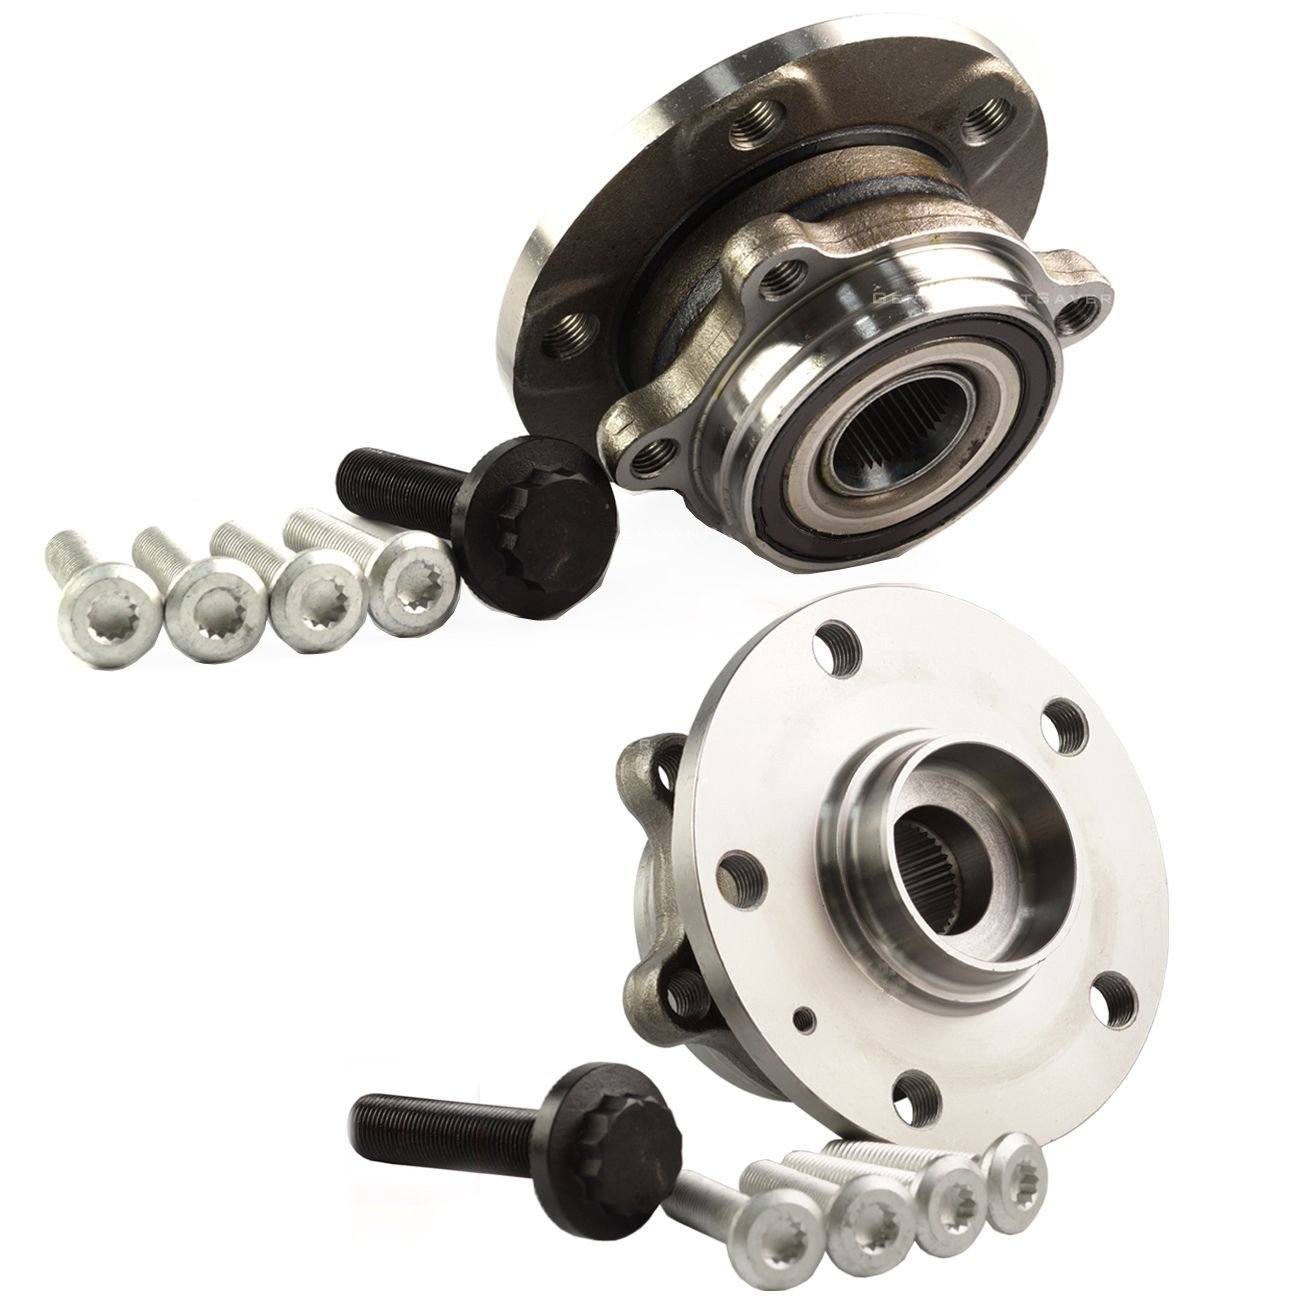 Bapmic 1T0498621 Front Wheel Hubs and Bearing Assembly for Volkswagen Audi ( Pack of 2 )